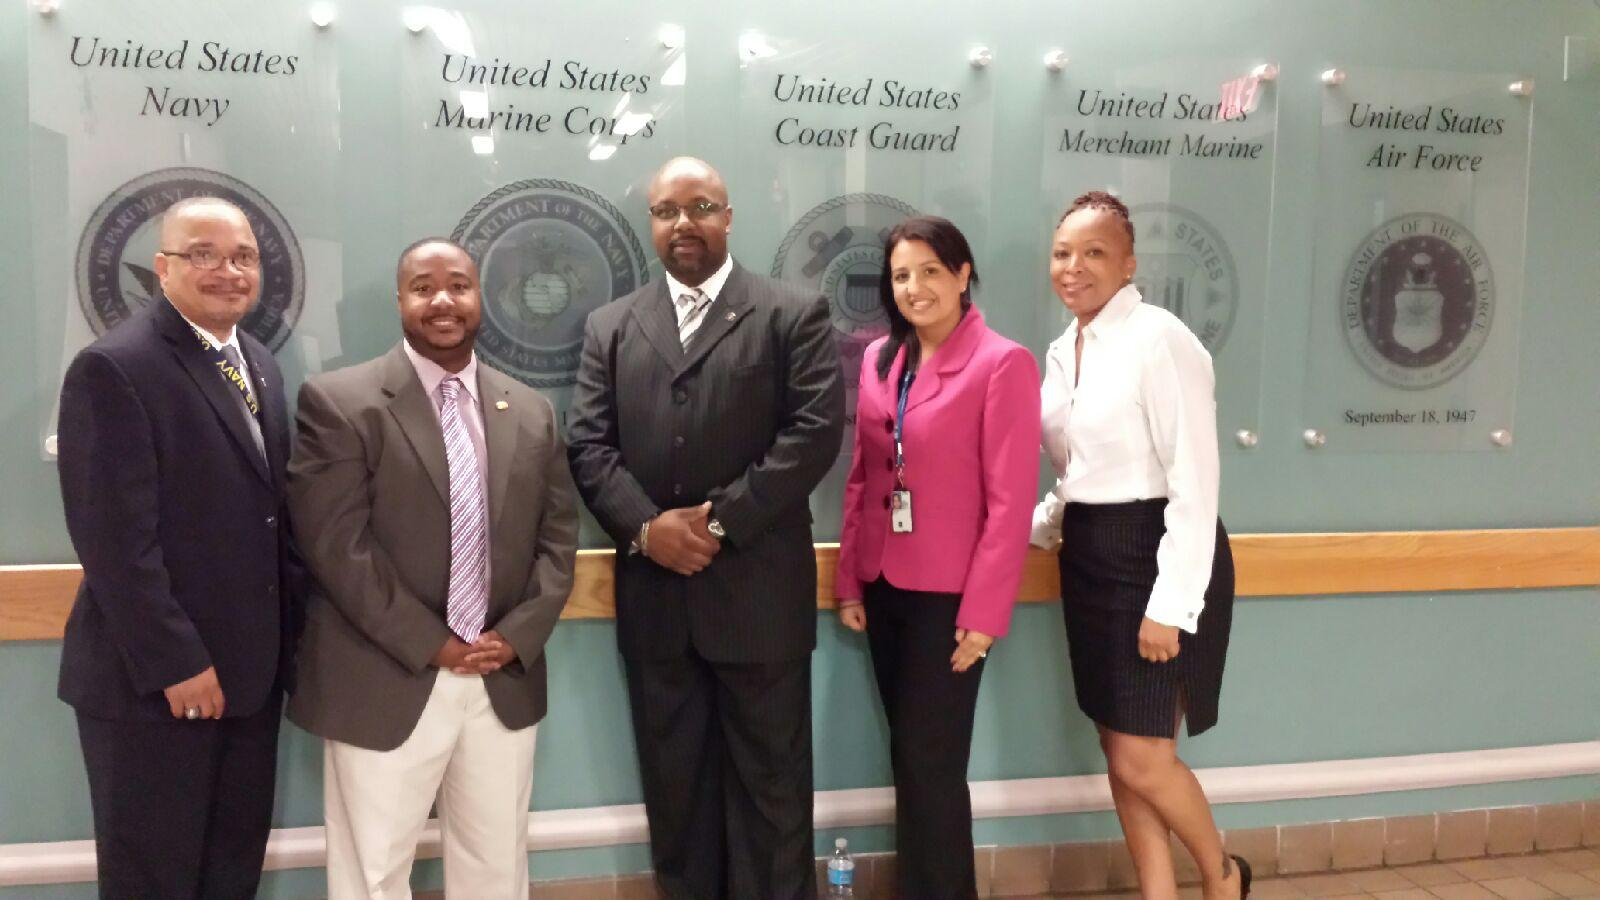 Veteran Employment Services Office, Human Resources Services Staff Visit VA Medical Center in Washington, DC